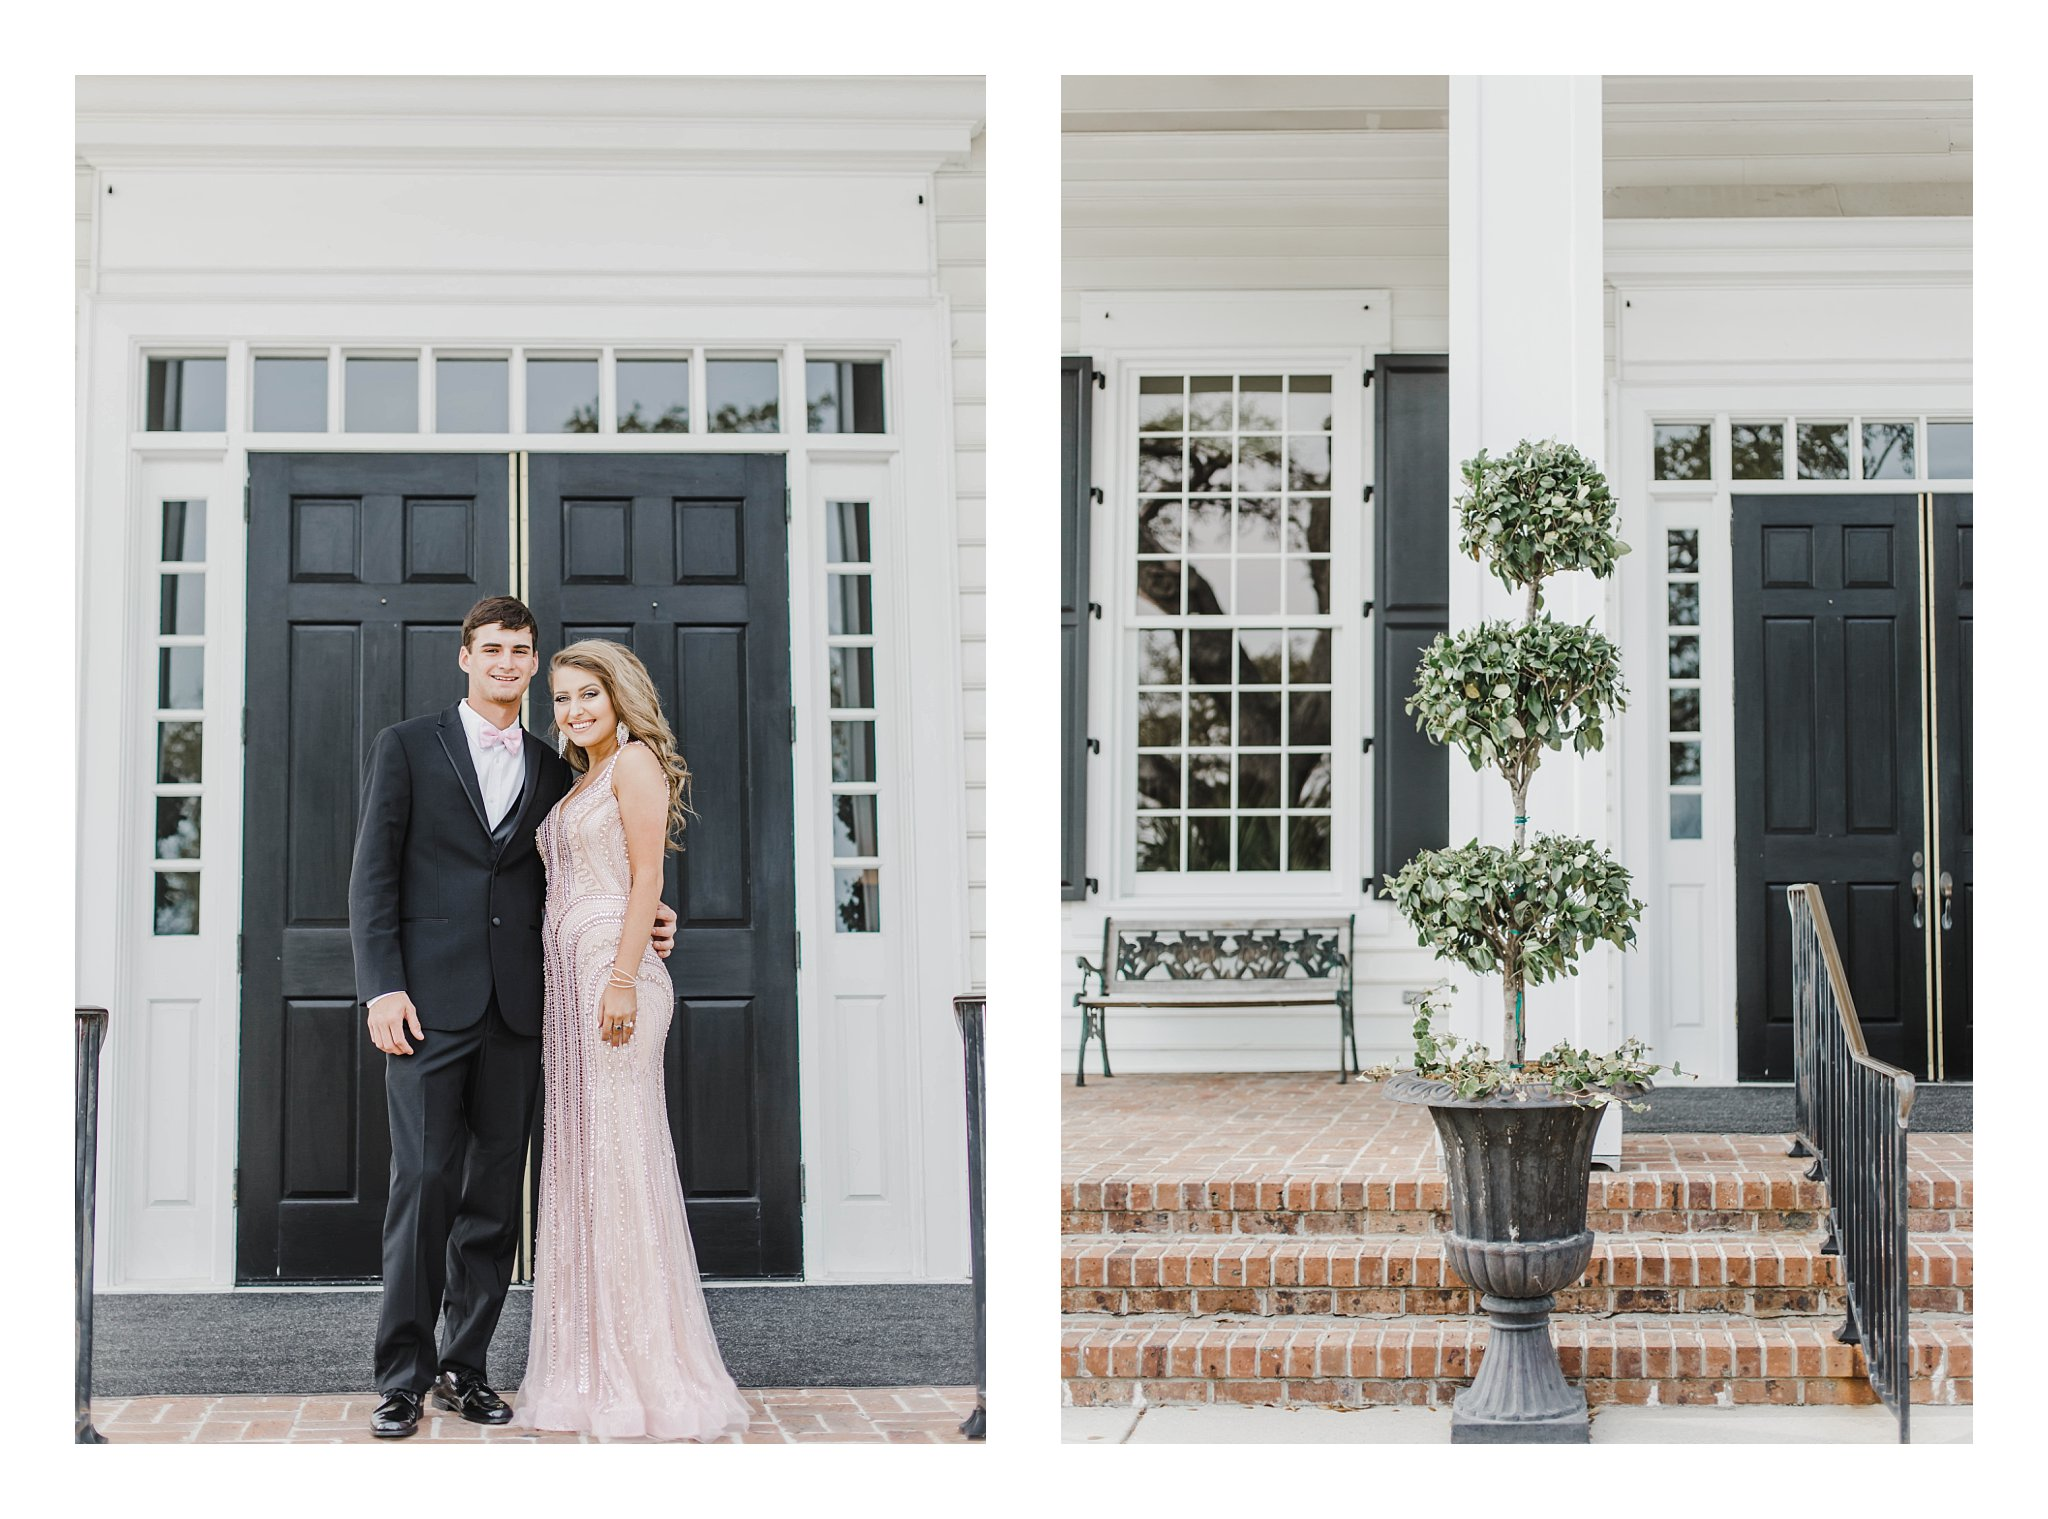 spring-belin-methodist-beaded-gown-murrells-inlet-sc-prom-photos-_0003.jpg